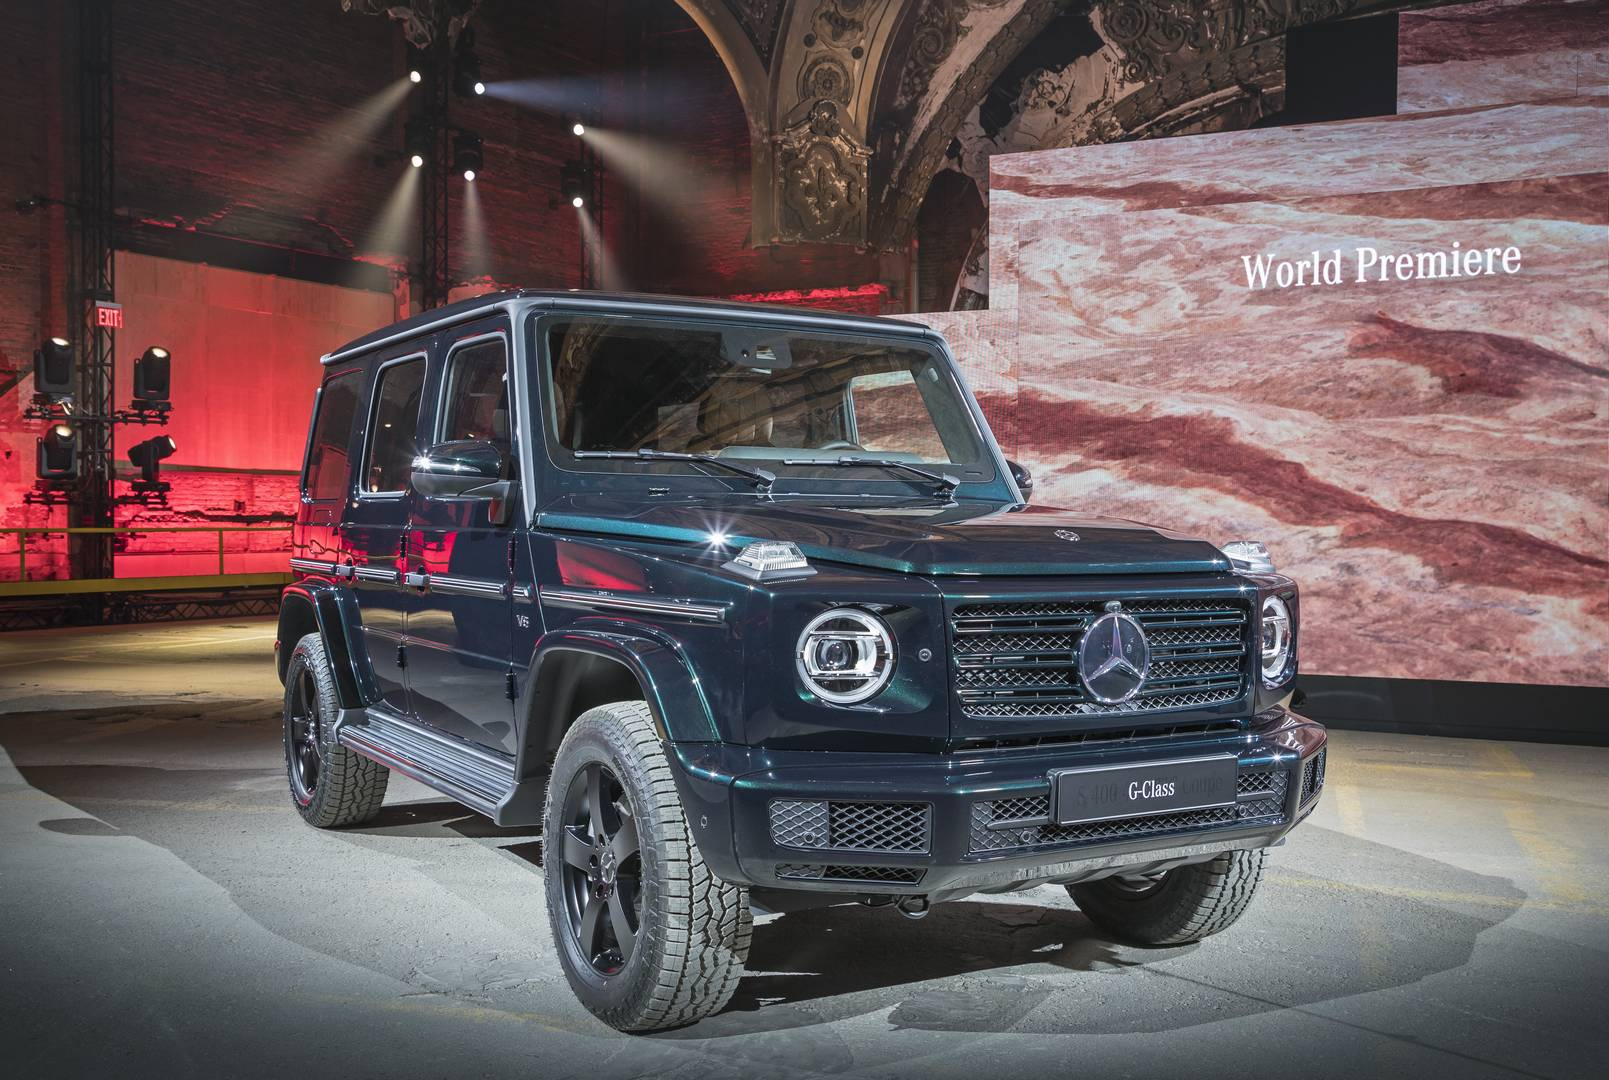 detroit 2018: what else did we learn at the new g-class unveil